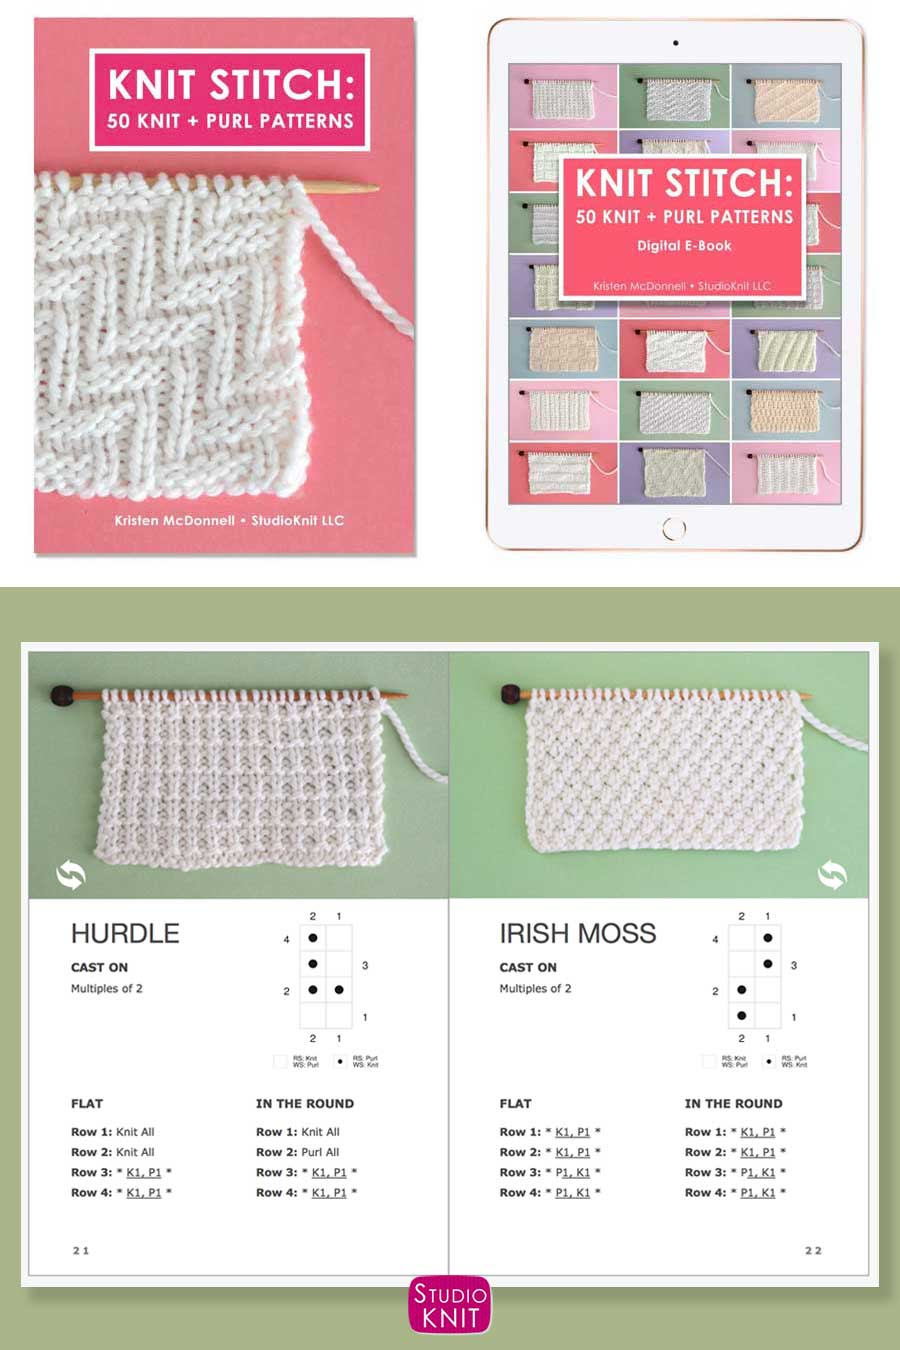 Knit Stitch Pattern Book with Hurdle and Irish Moss Stitch Patterns